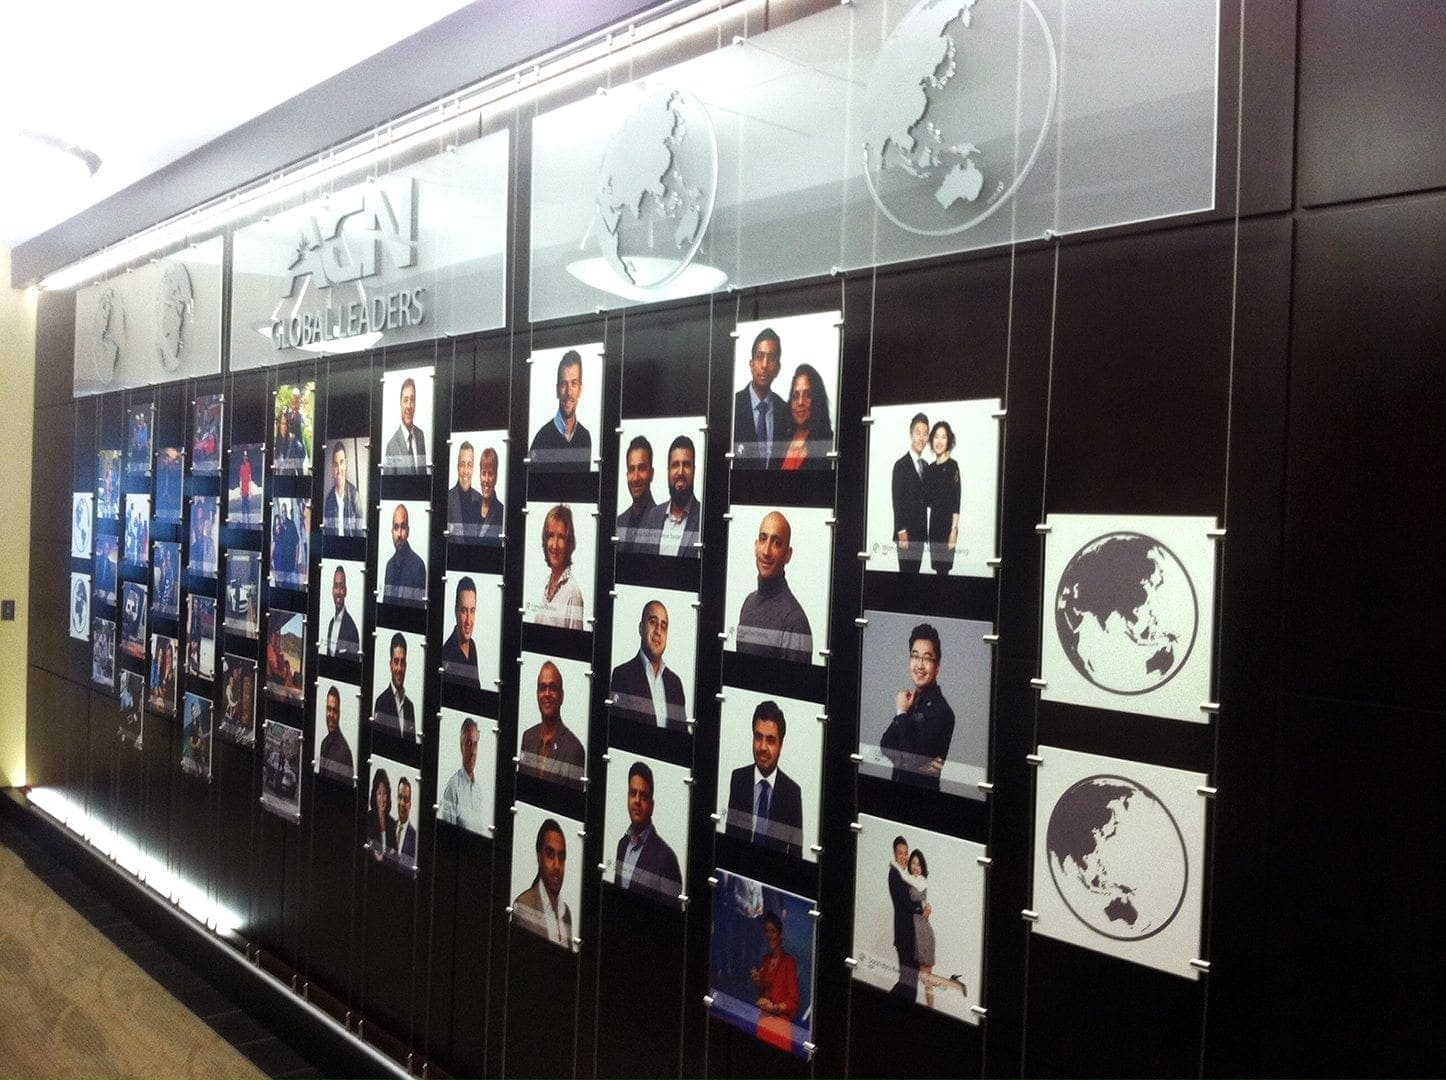 Lobby wall of prints of leaders cable-hung with custom world map graphics and brand logo